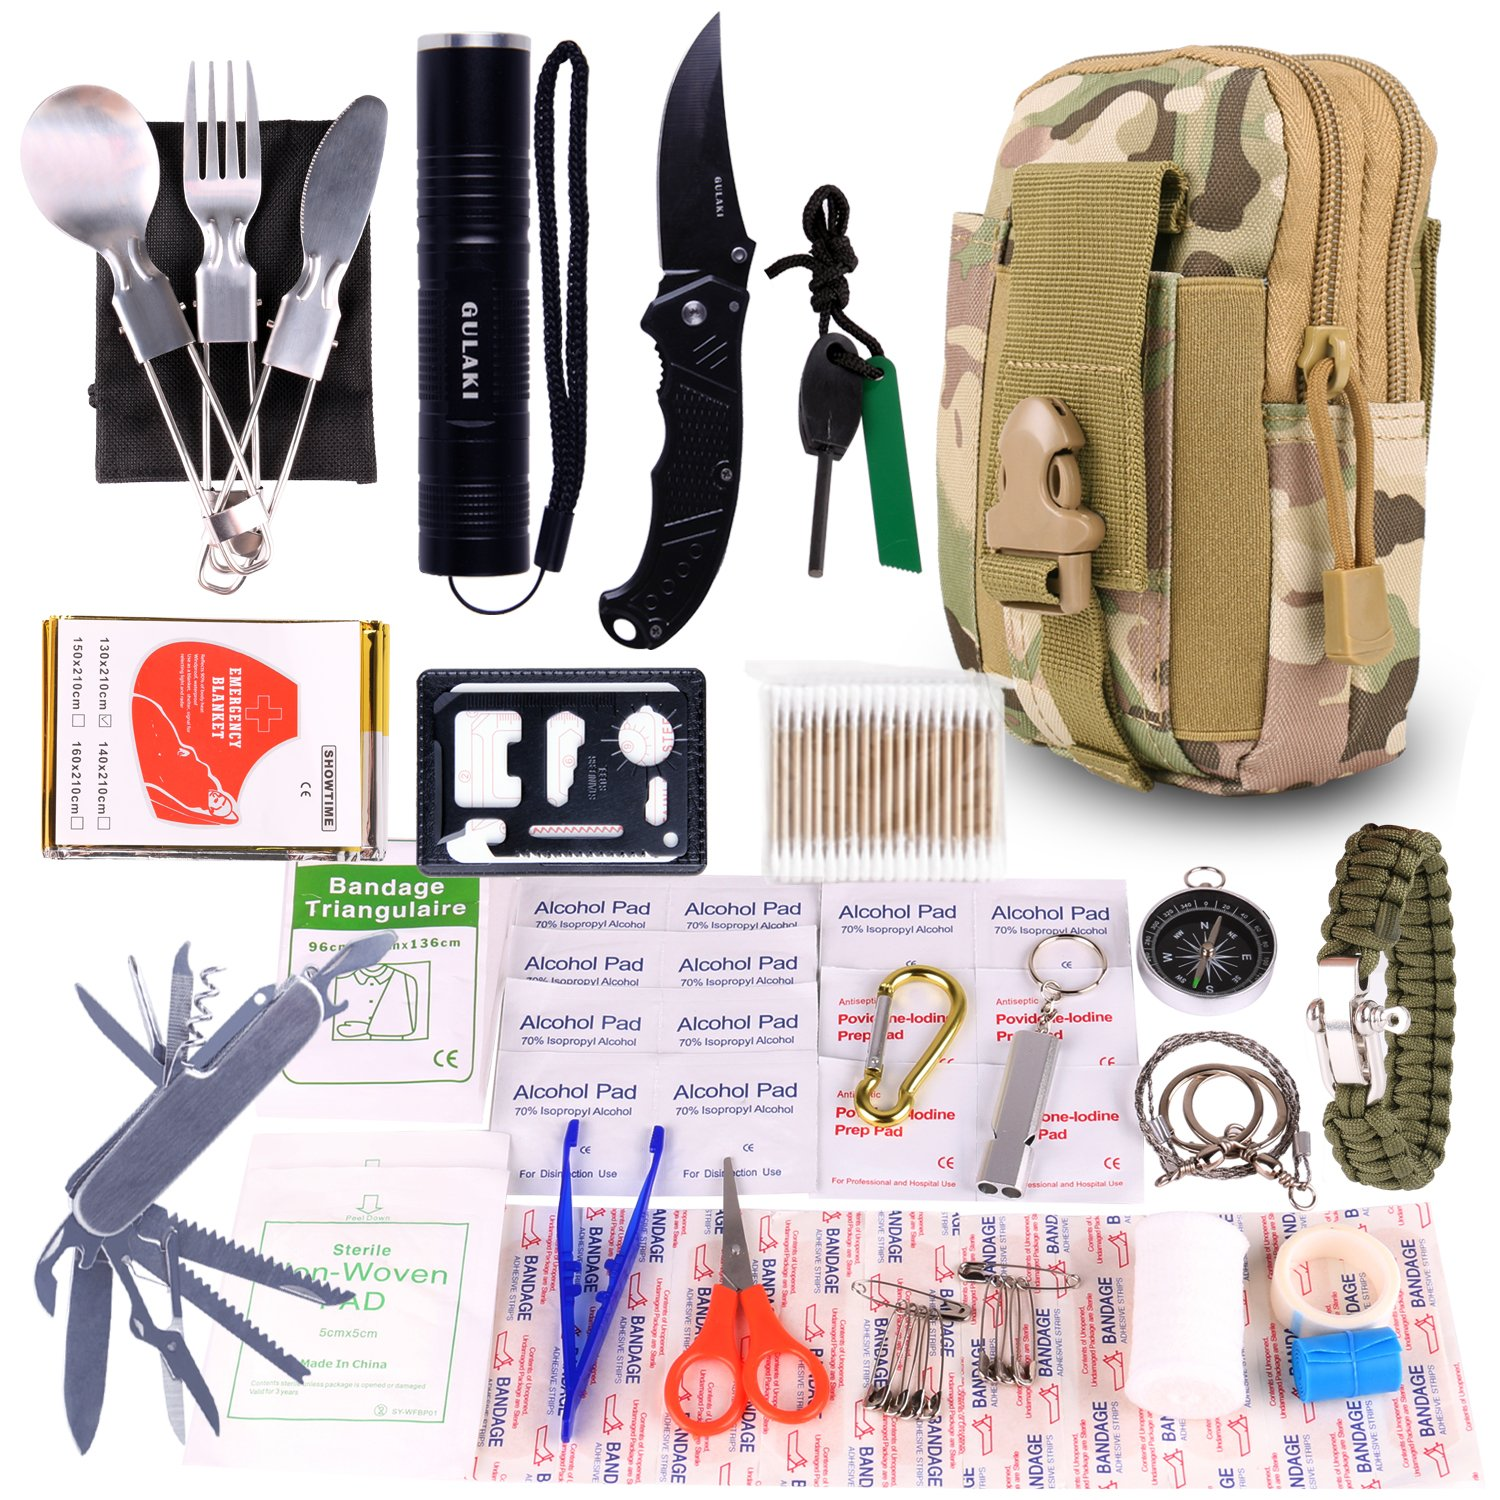 GULAKI Emergency Survival Gear Kits, Portable Survival Gear Tool First Aid Kit for Hiking Camping Travel Adventure